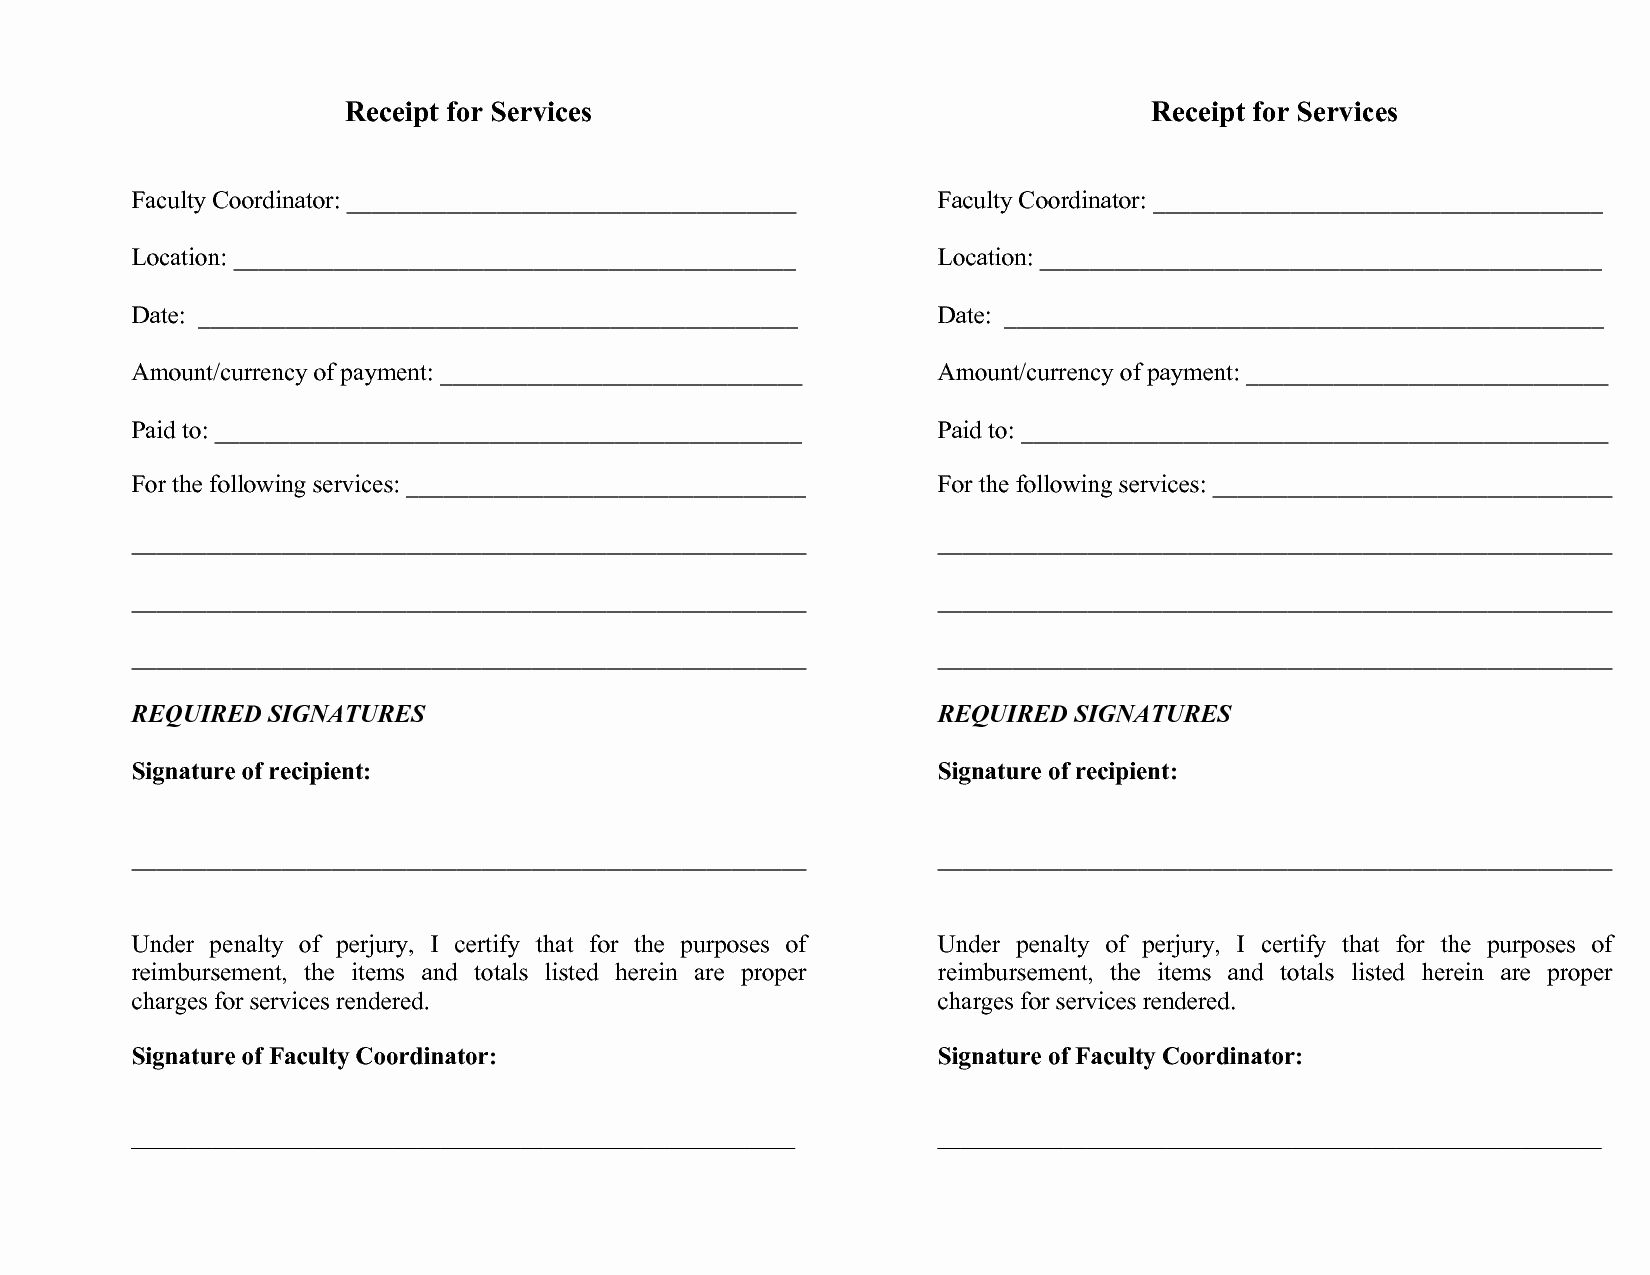 Receipt for Services Template Best Of Blank Receipt for Services Rendered Bill Sale Template